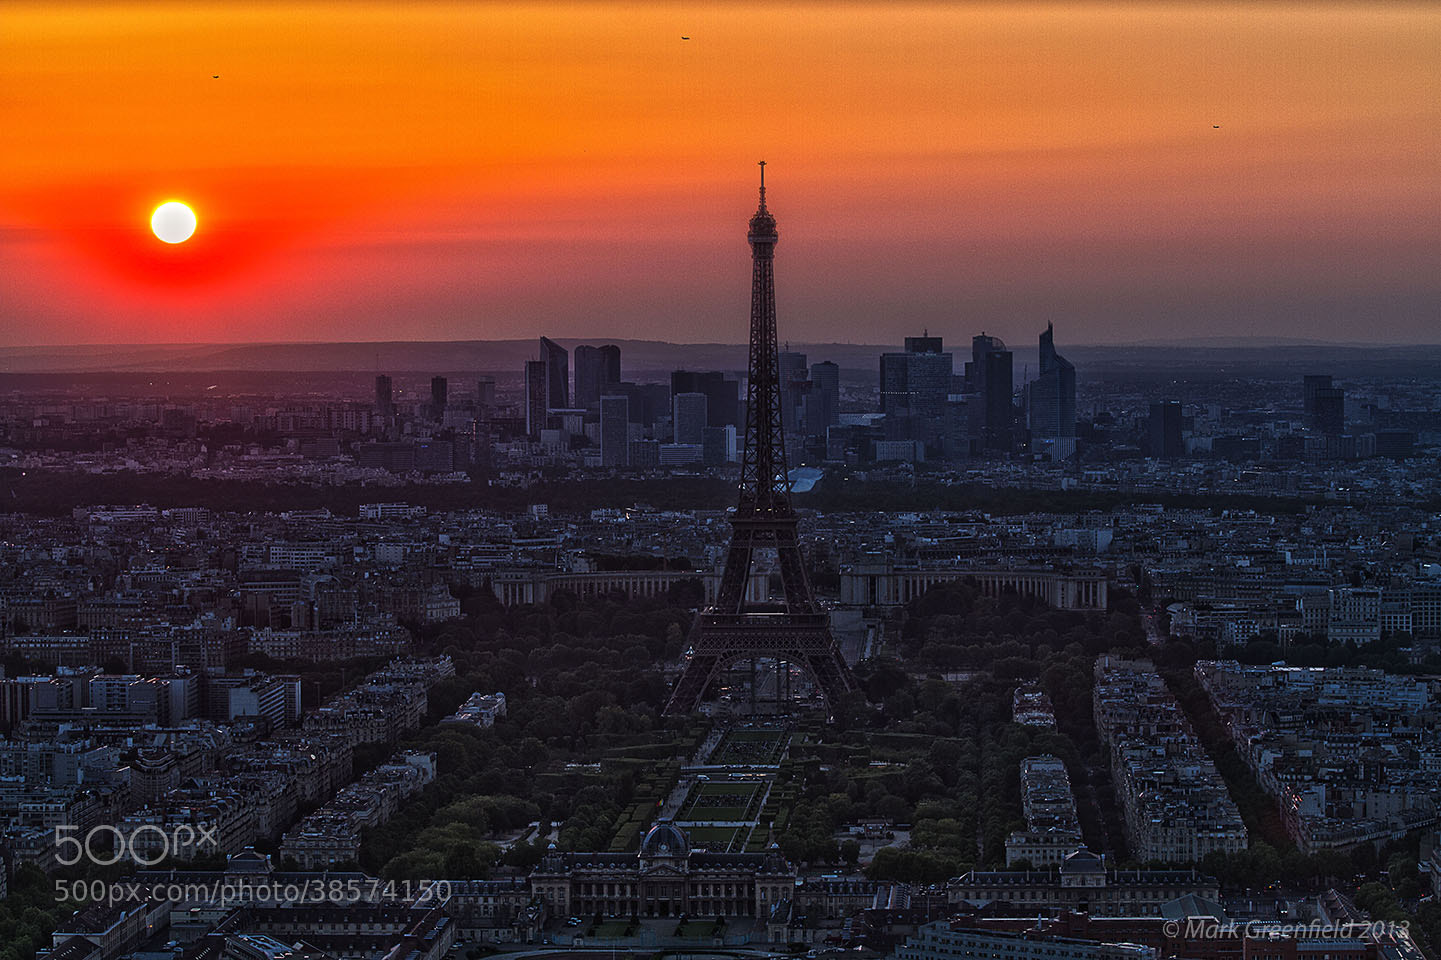 Photograph Eiffel Tower Sunset by Mark Greenfield on 500px